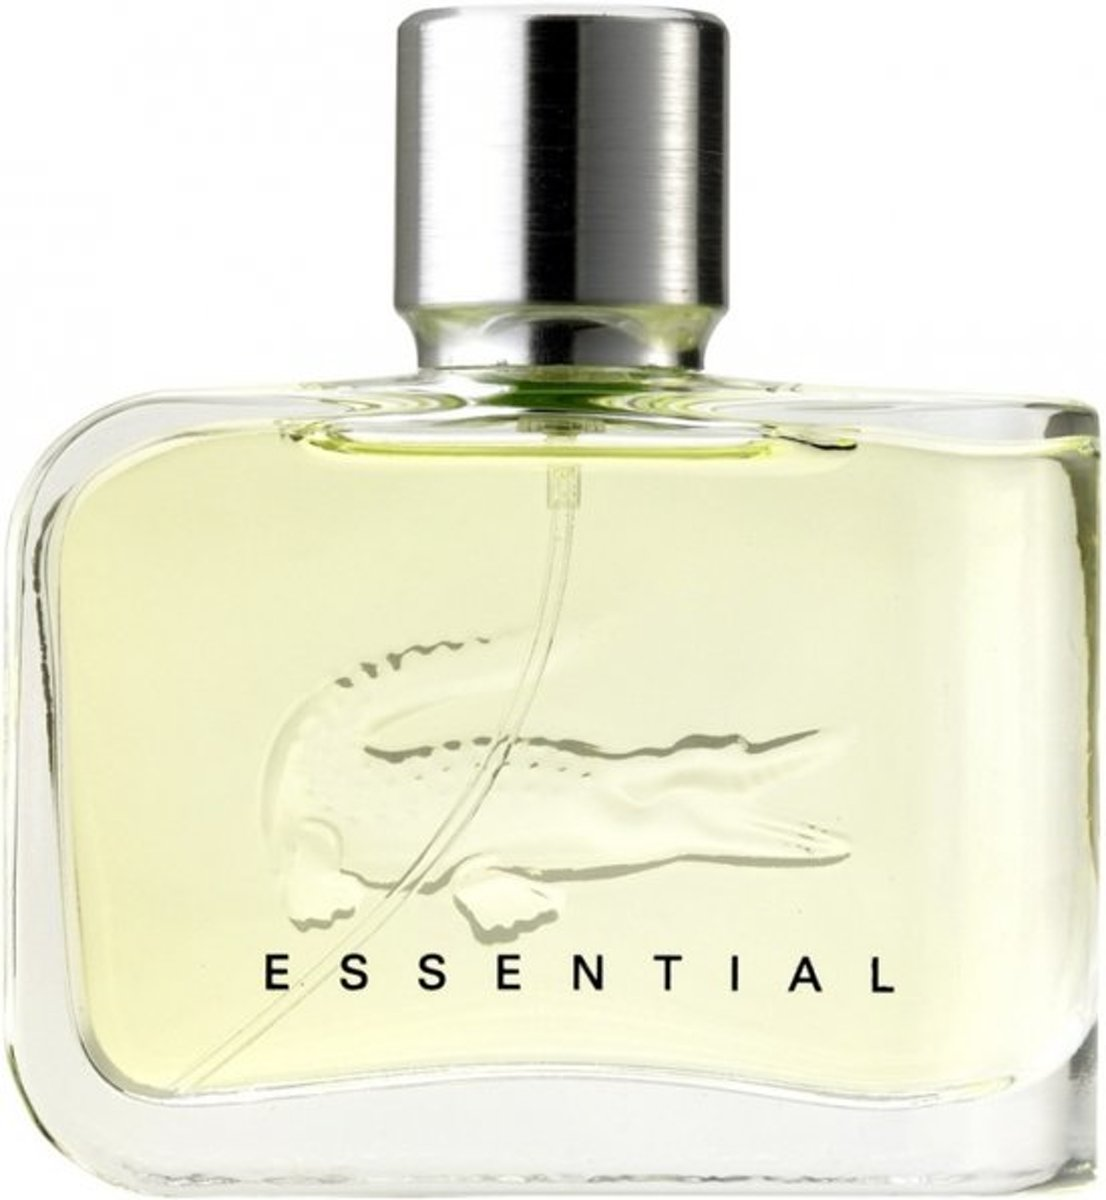 Lacoste Essential for Men - 125 ml - Eau de toilette